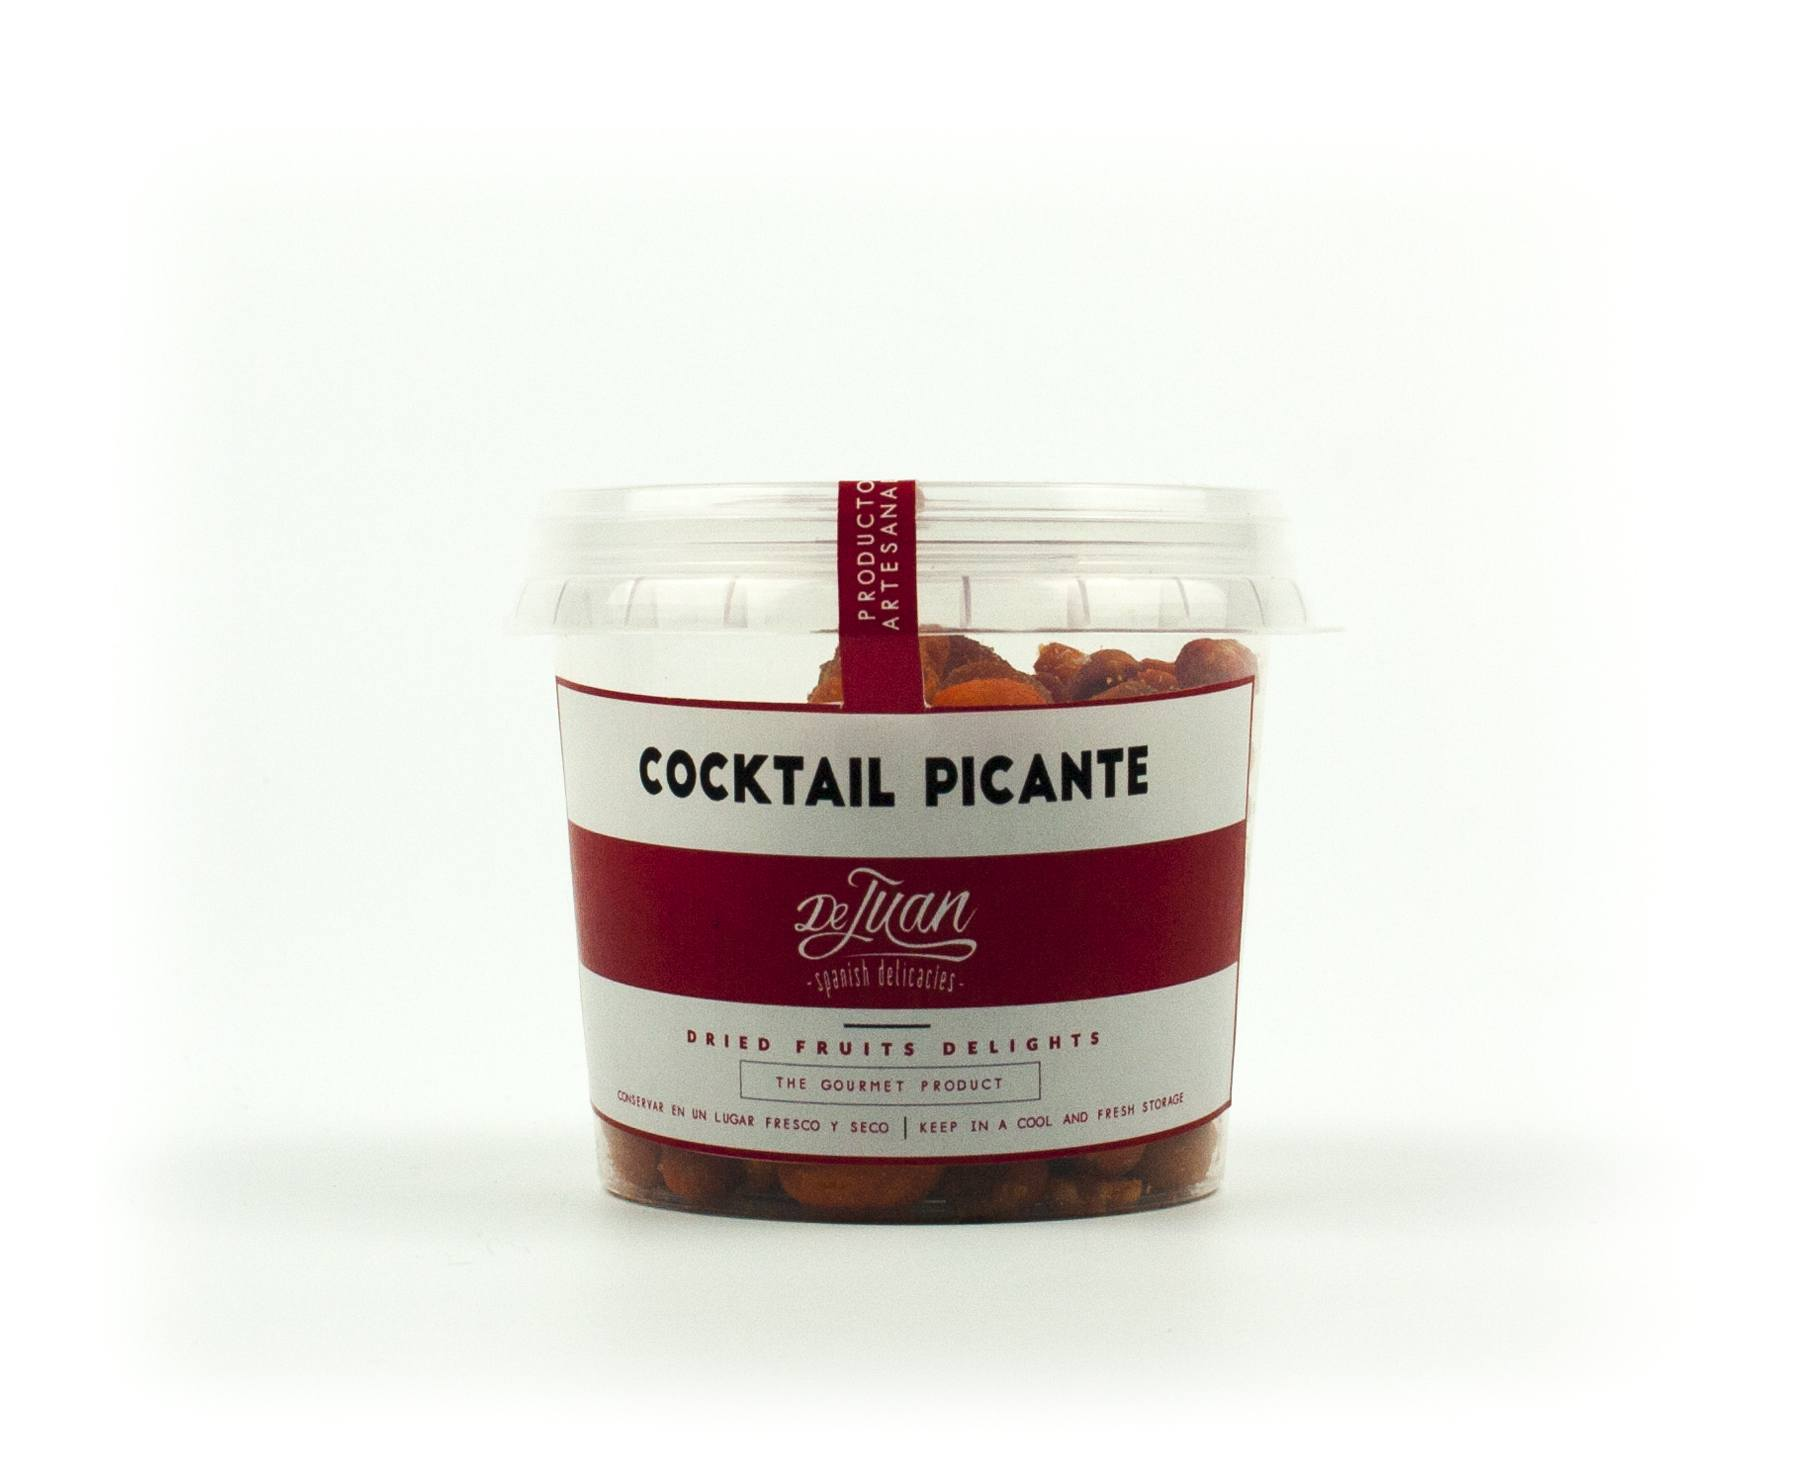 Cocktail Picante